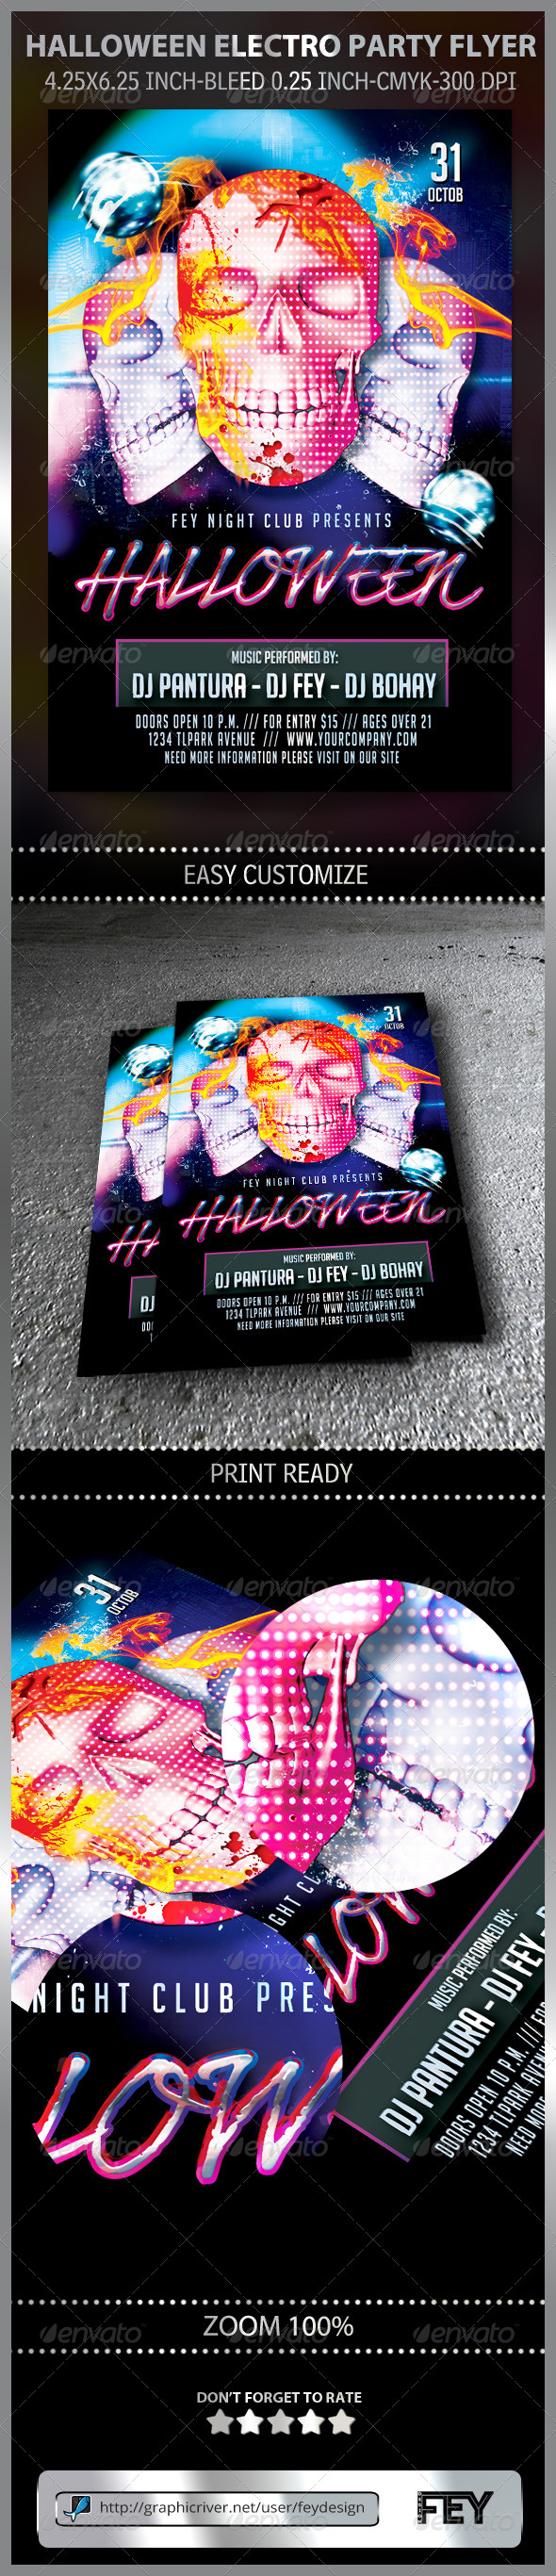 Halloween Electro Party Flyer